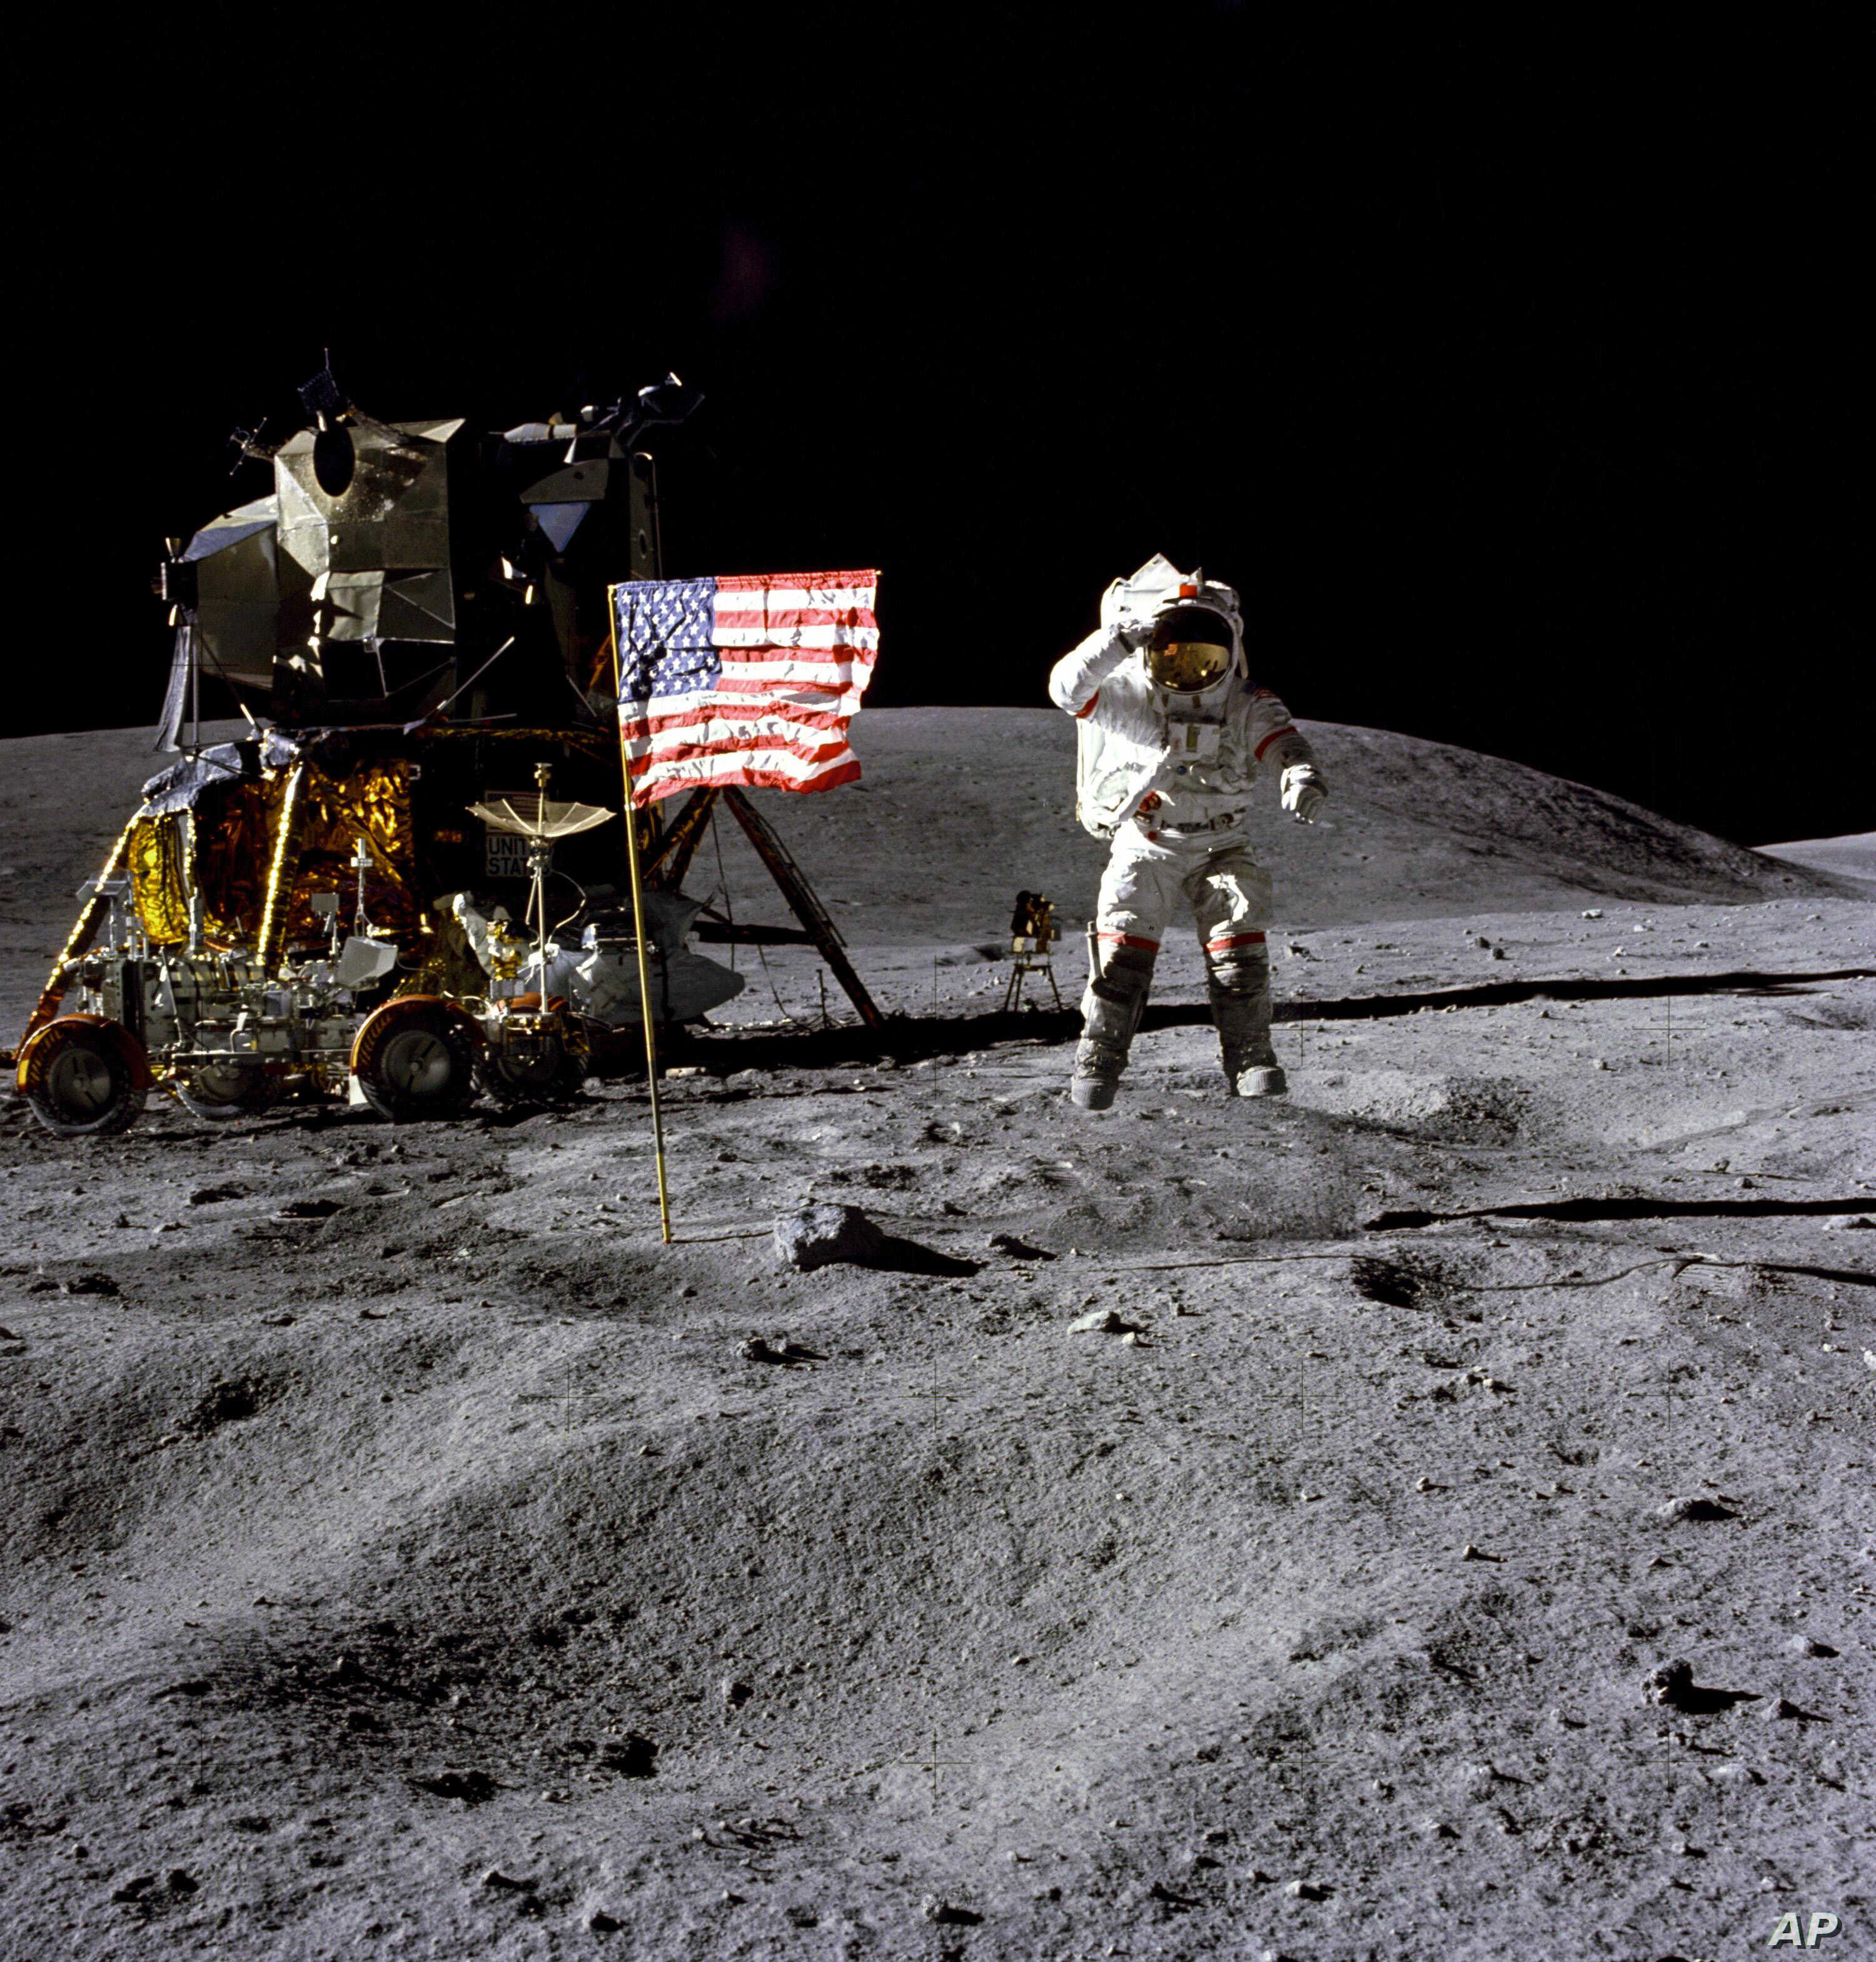 Millions Still Believe the 1969 Moon Landing Was a Hoax